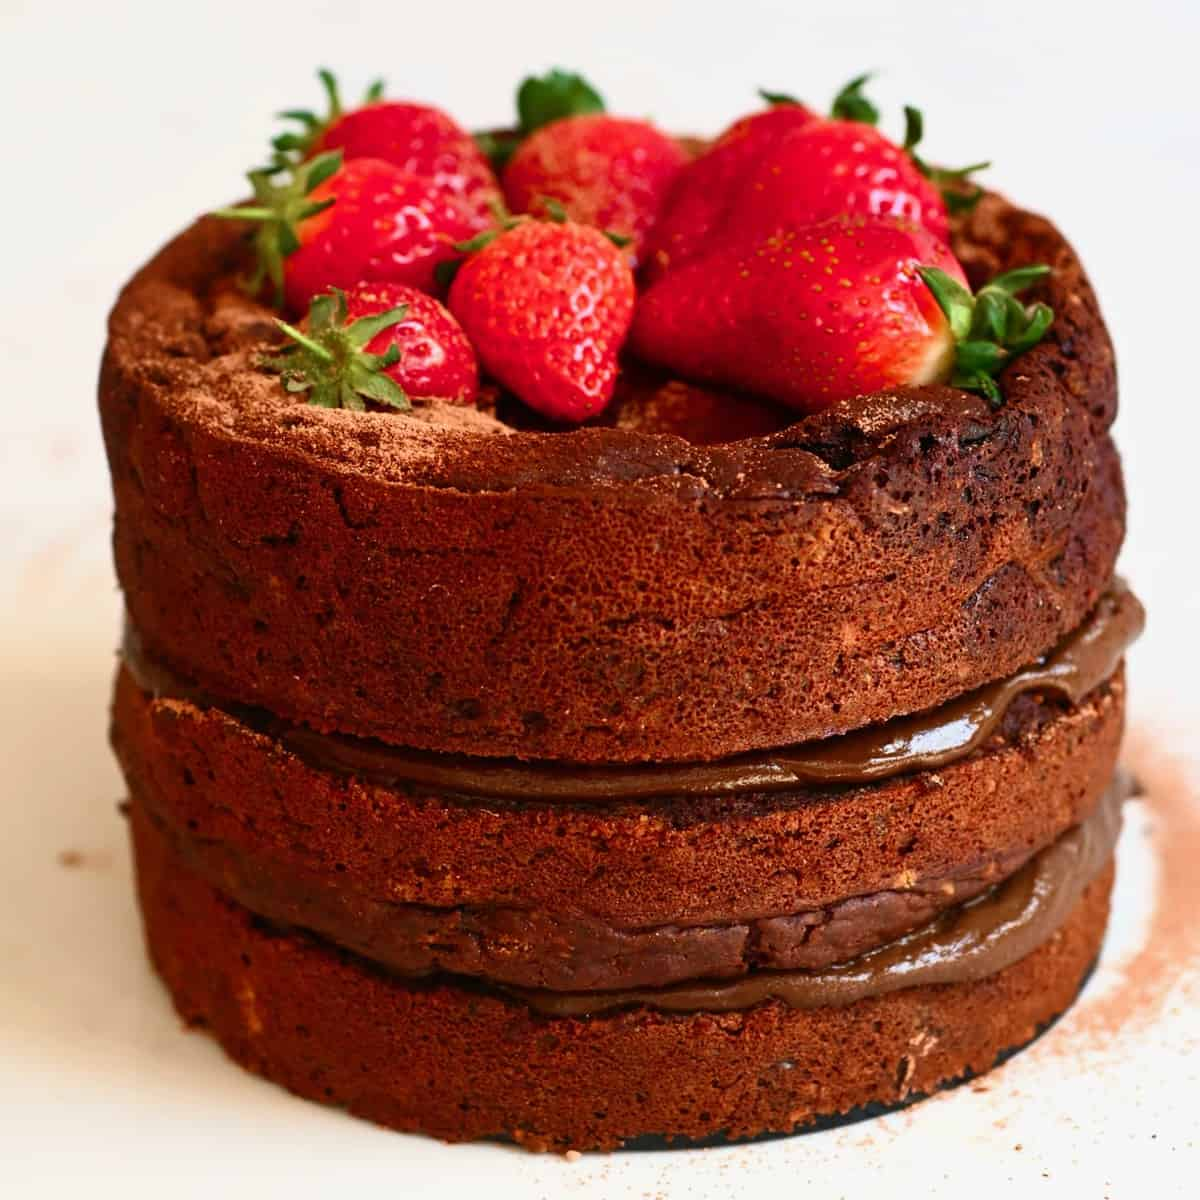 gluten free chocolate cake topped with strawberries